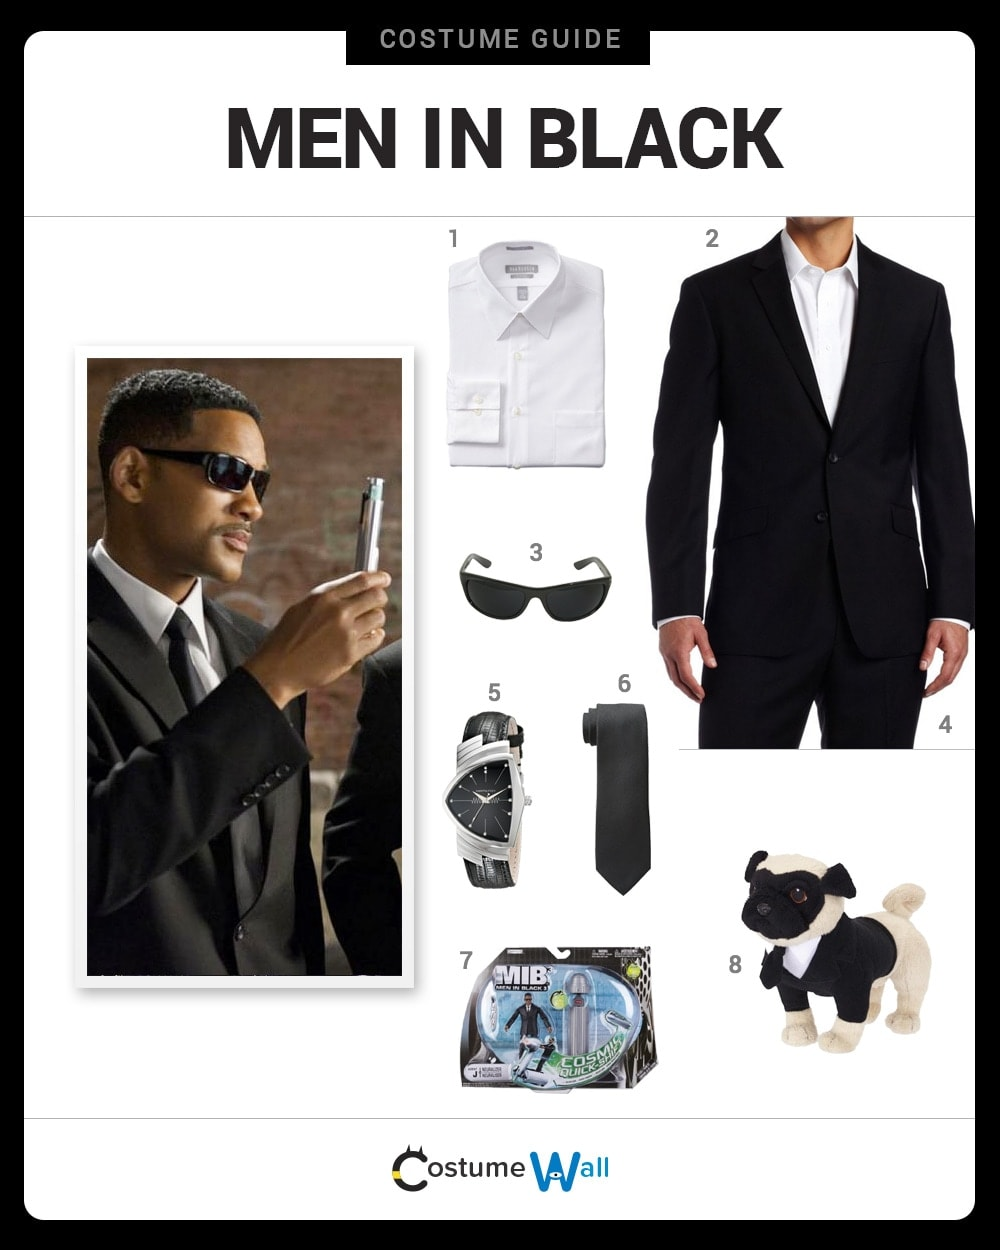 Dress Like Men In Black Costume DIY Outfit | Costume Wall